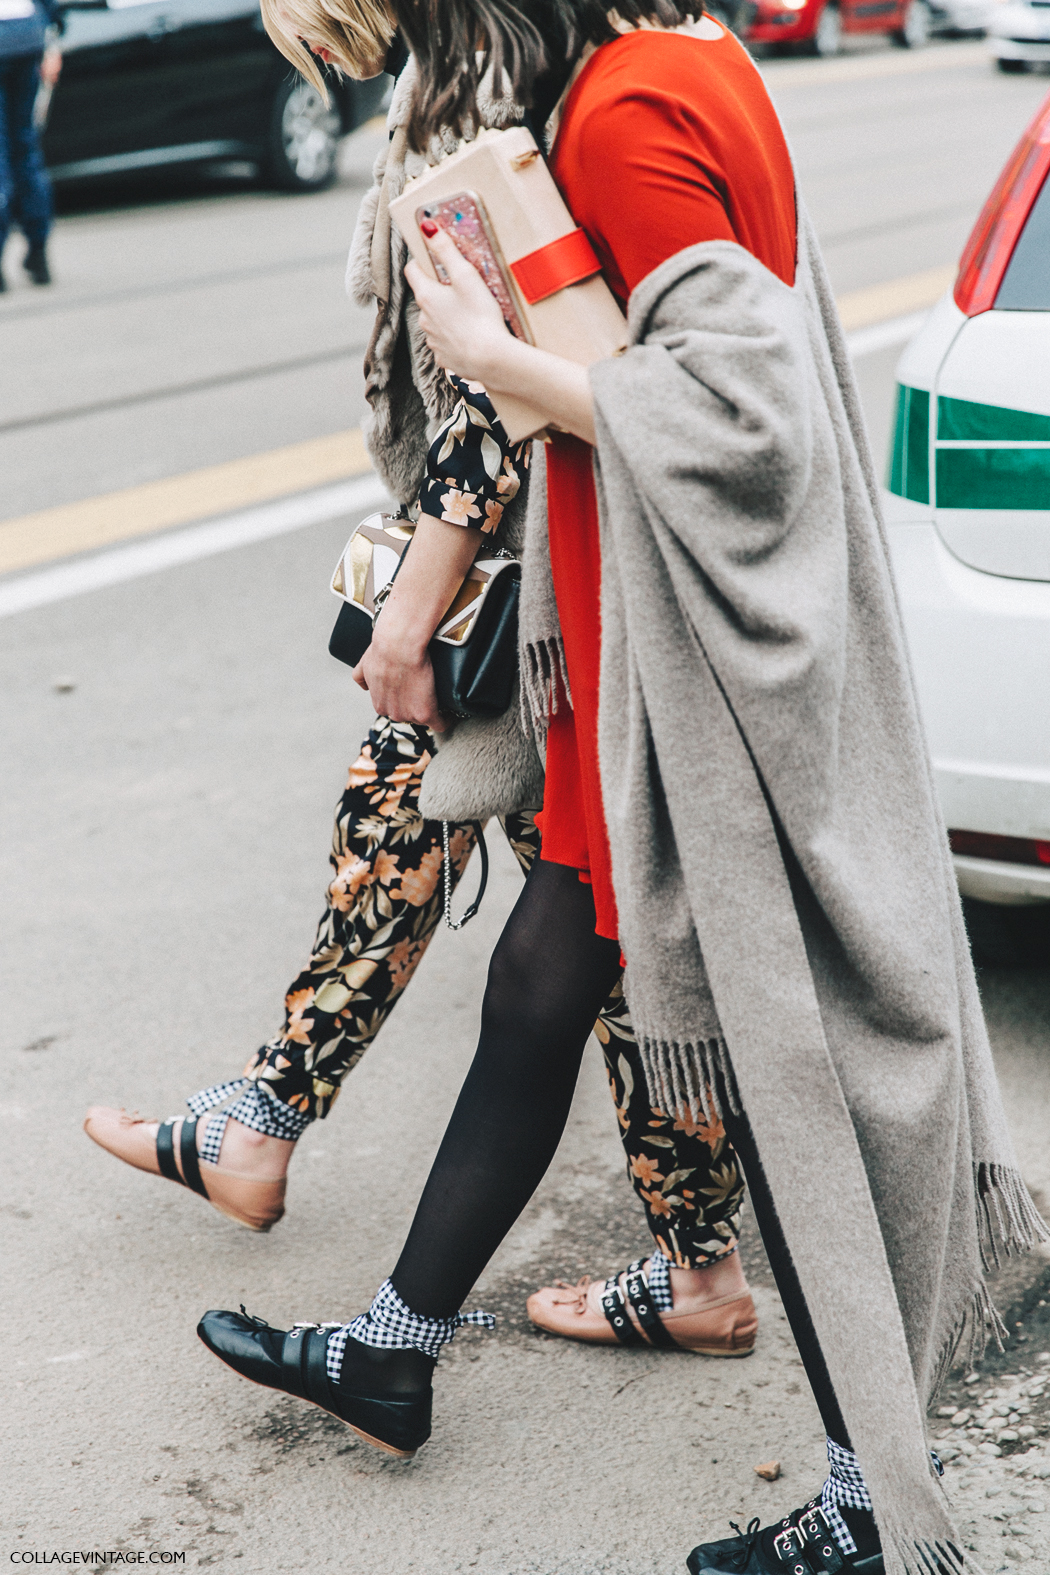 Milan_Fashion_Week_Fall_16-MFW-Street_Style-Collage_Vintage-Miu_Miu_Flats-